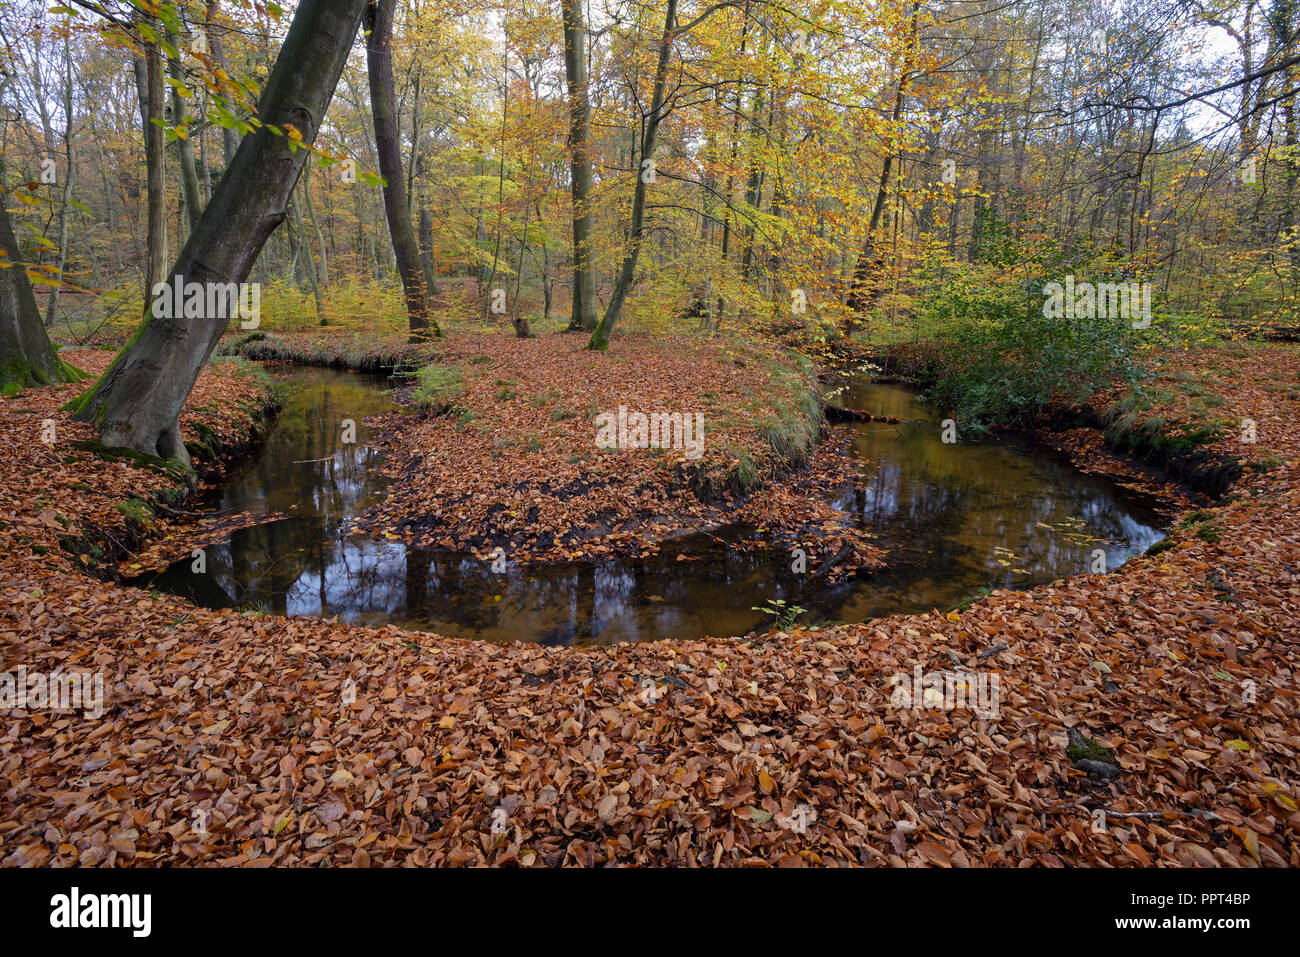 Rotbach, creek in beech forest, november, Oberhausen, Germany - Stock Image